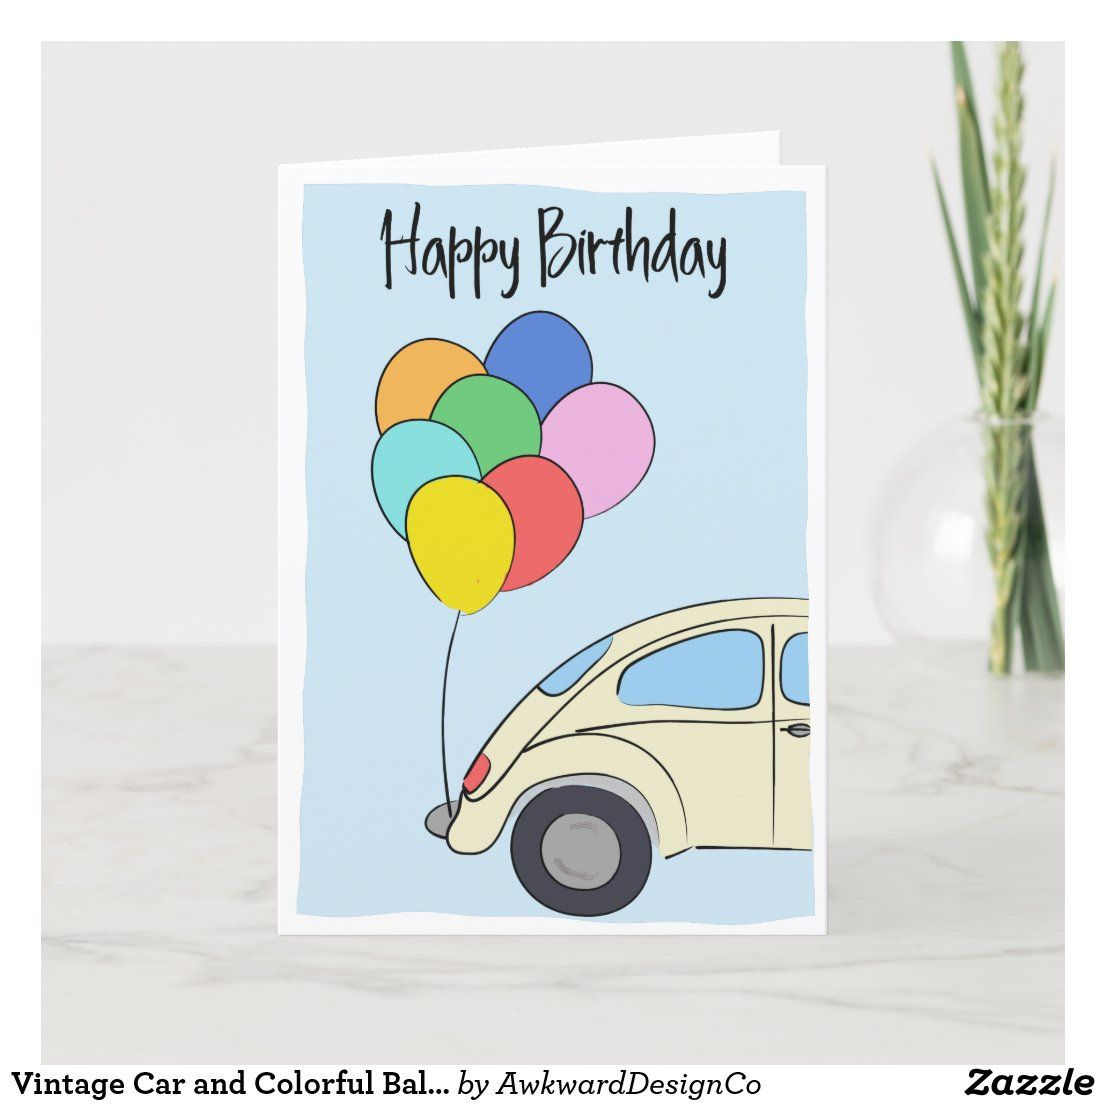 Vintage Car And Colorful Balloons Drawing Birthday Card Zazzle Com In 2021 Birthday Card Drawing Birthday Cards Card Drawing